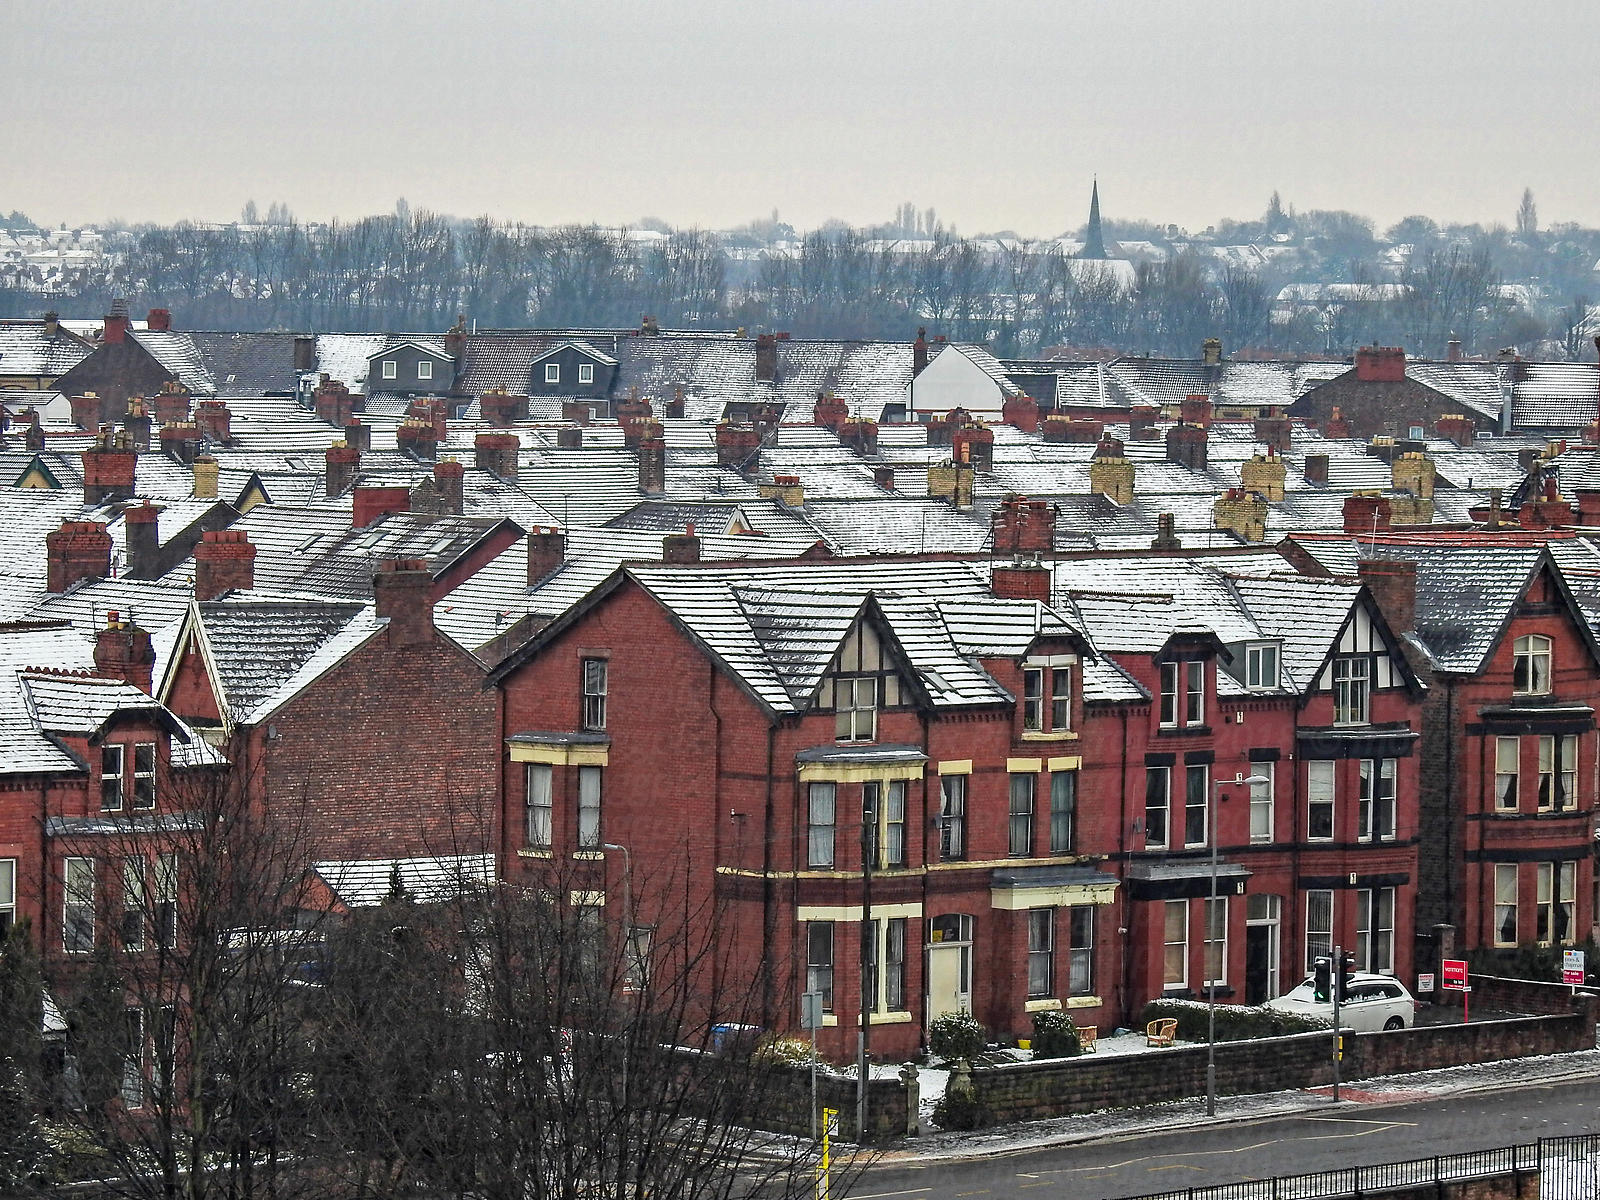 Snowy Rooftops in Liverpool